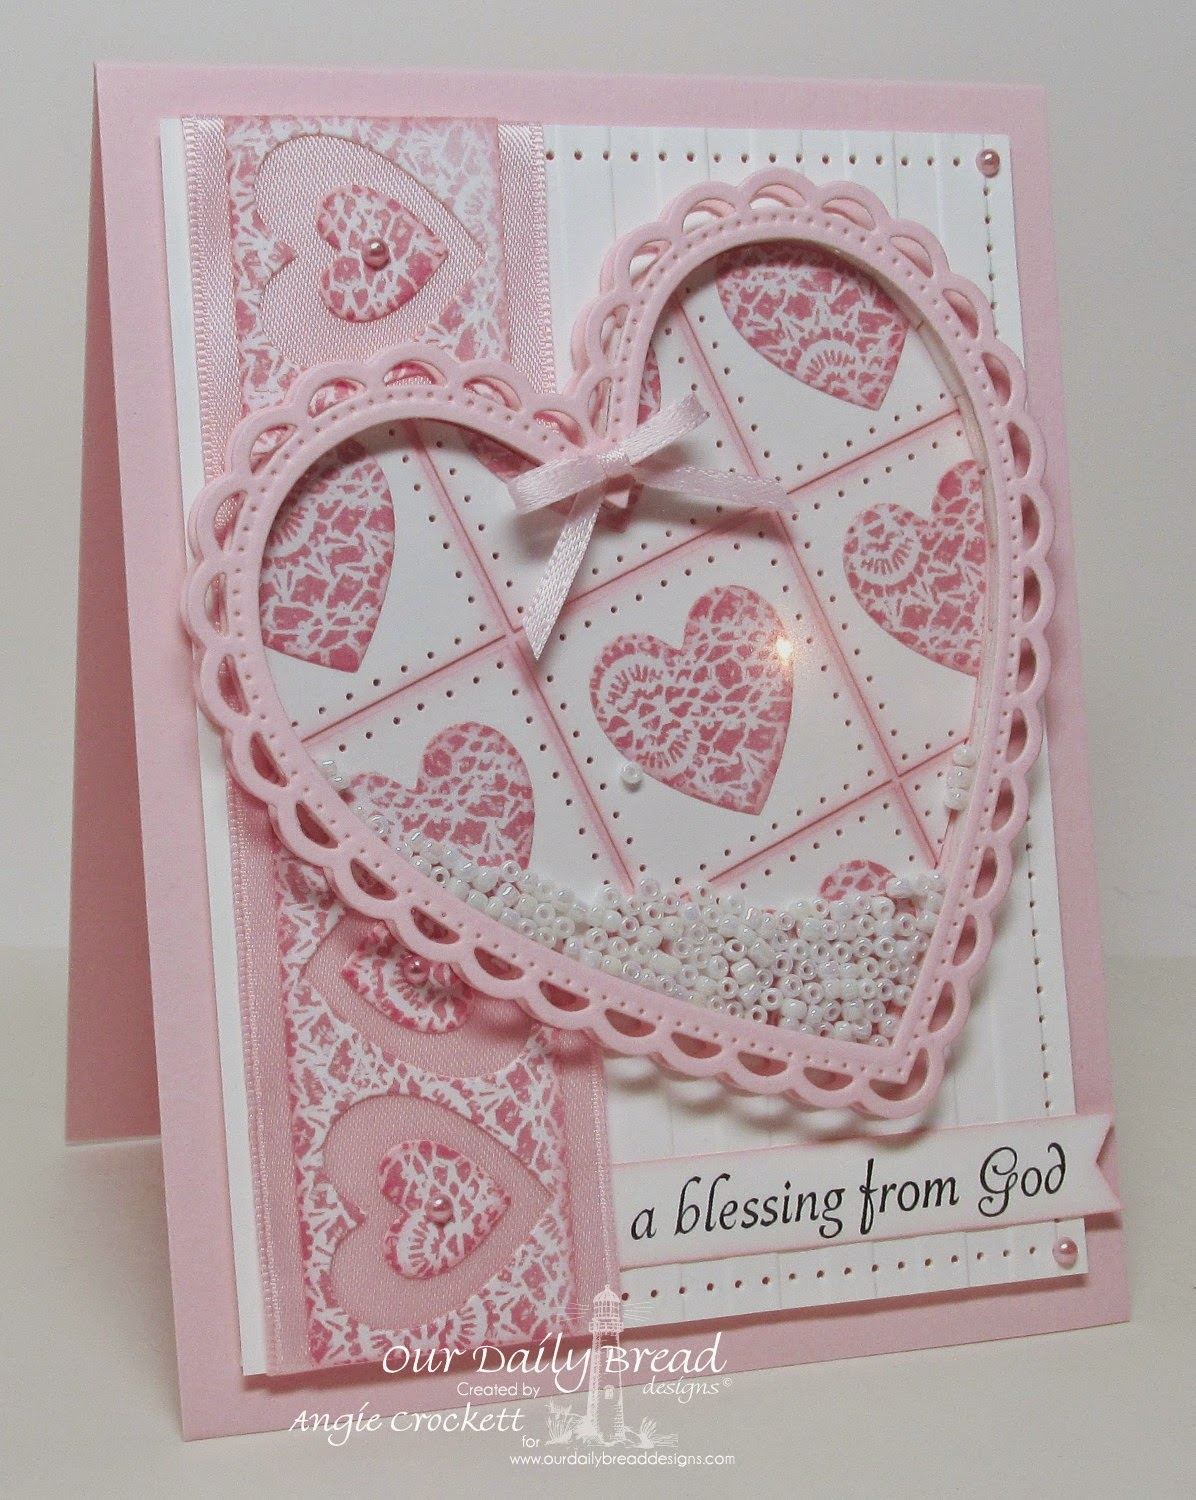 ODBD Little Girls, ODBD Ornate Hearts Dies, ODBD Heart and Soul Designer Paper Collection, Card Designer Angie Crockett